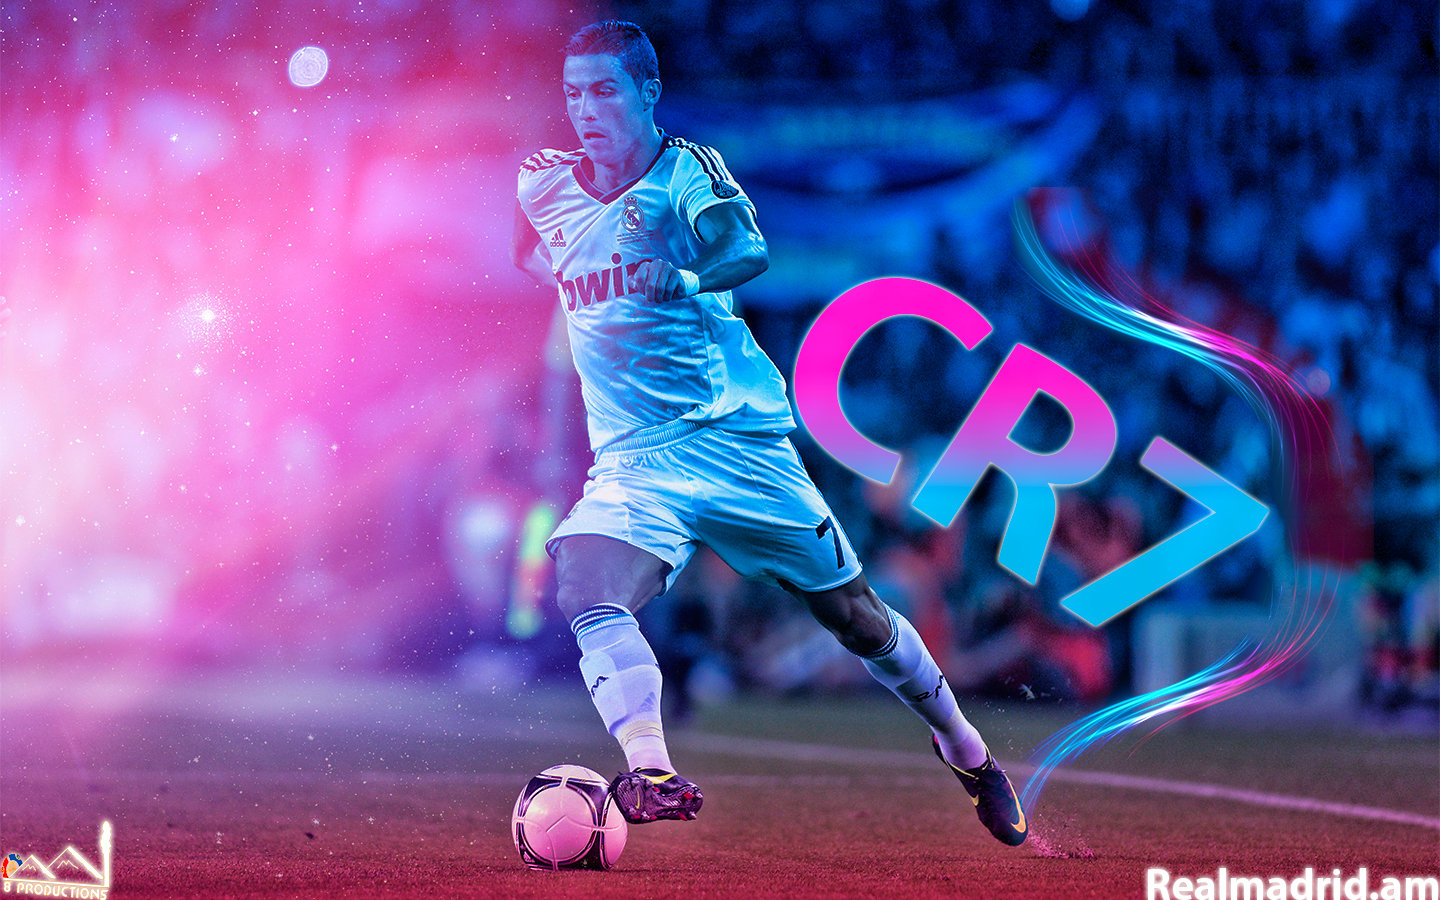 Art Of Cristiano Ronaldo Fans Wallpaper Sport Soccer: WallpaperSafari